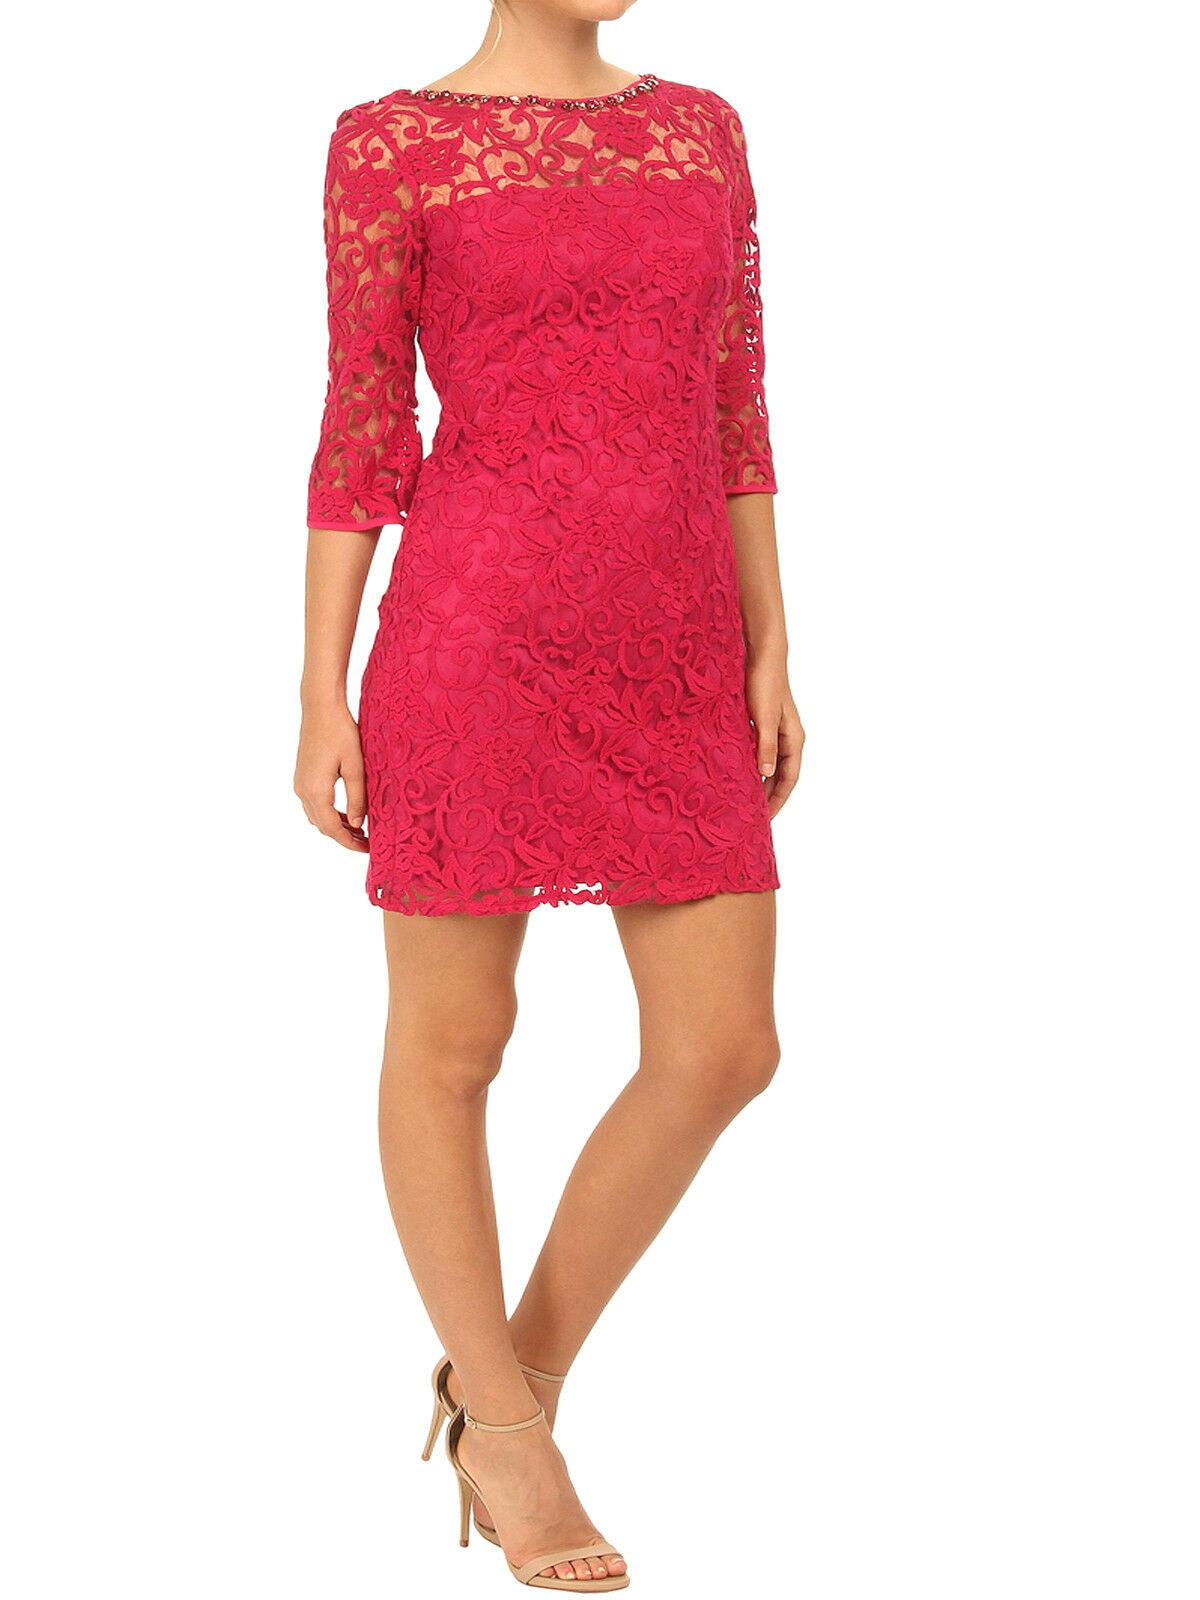 Adrianna Papell Pinky Red Lace Shift Dress with 3 4 Sleeves Orig Price